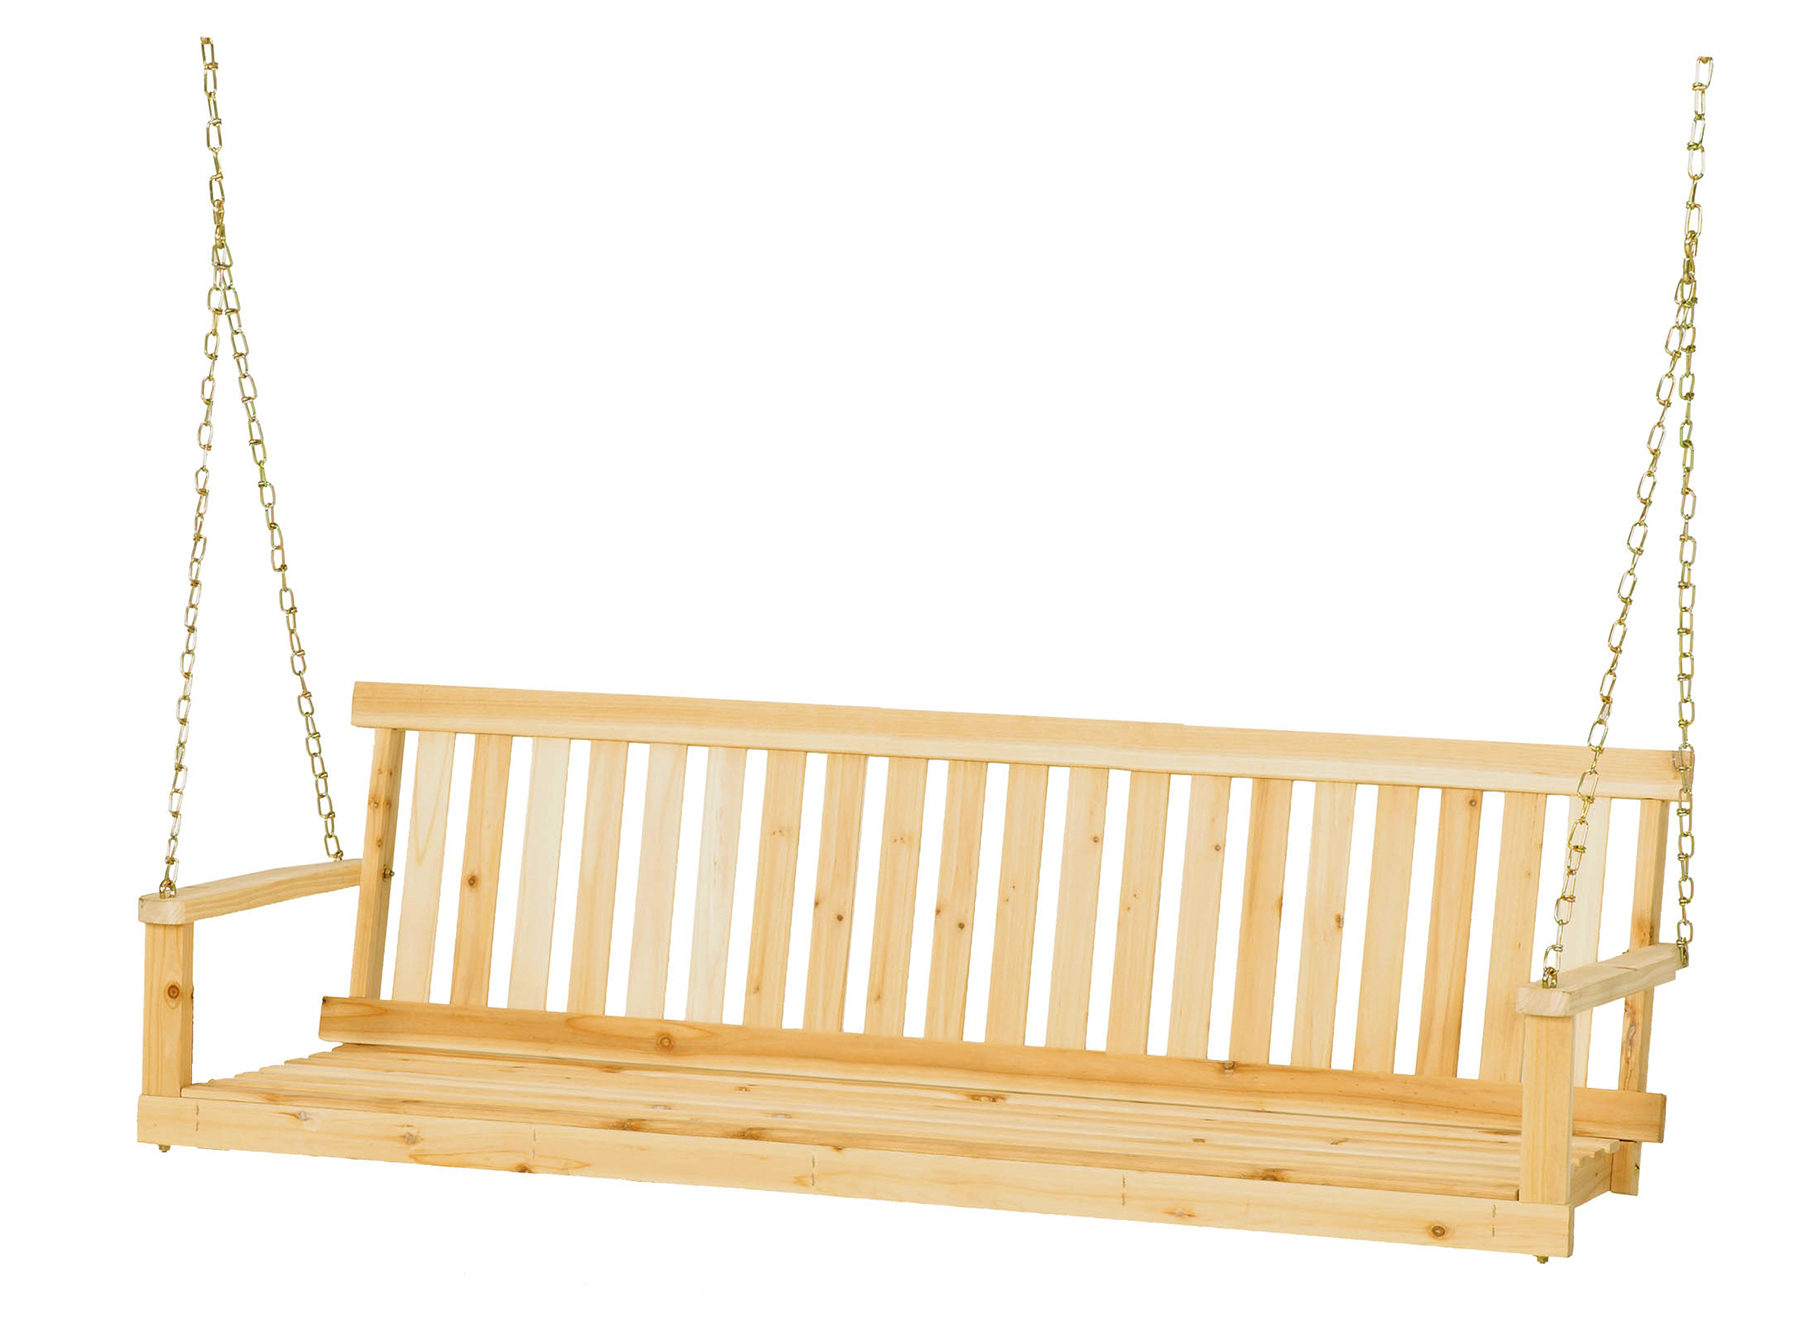 Jack Post Jennings 5' Swing With Chains – Walmart Throughout Well Liked Porch Swings With Chain (Gallery 15 of 26)